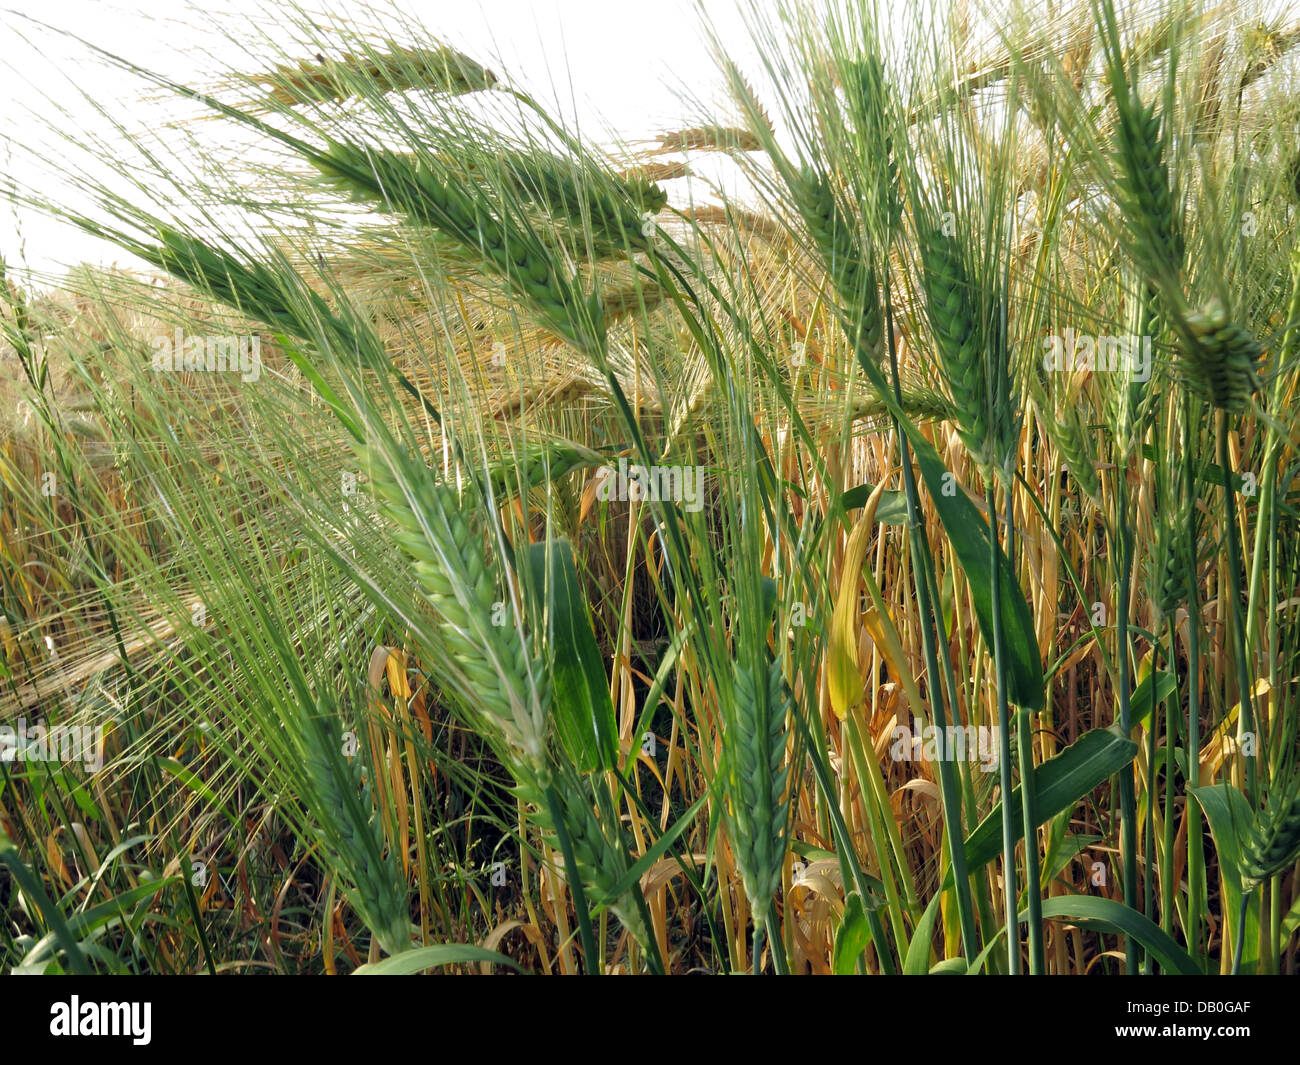 Field of wheat nearly ready for harvest in Grappenhall, Cheshire, NW England, UK - Stock Image